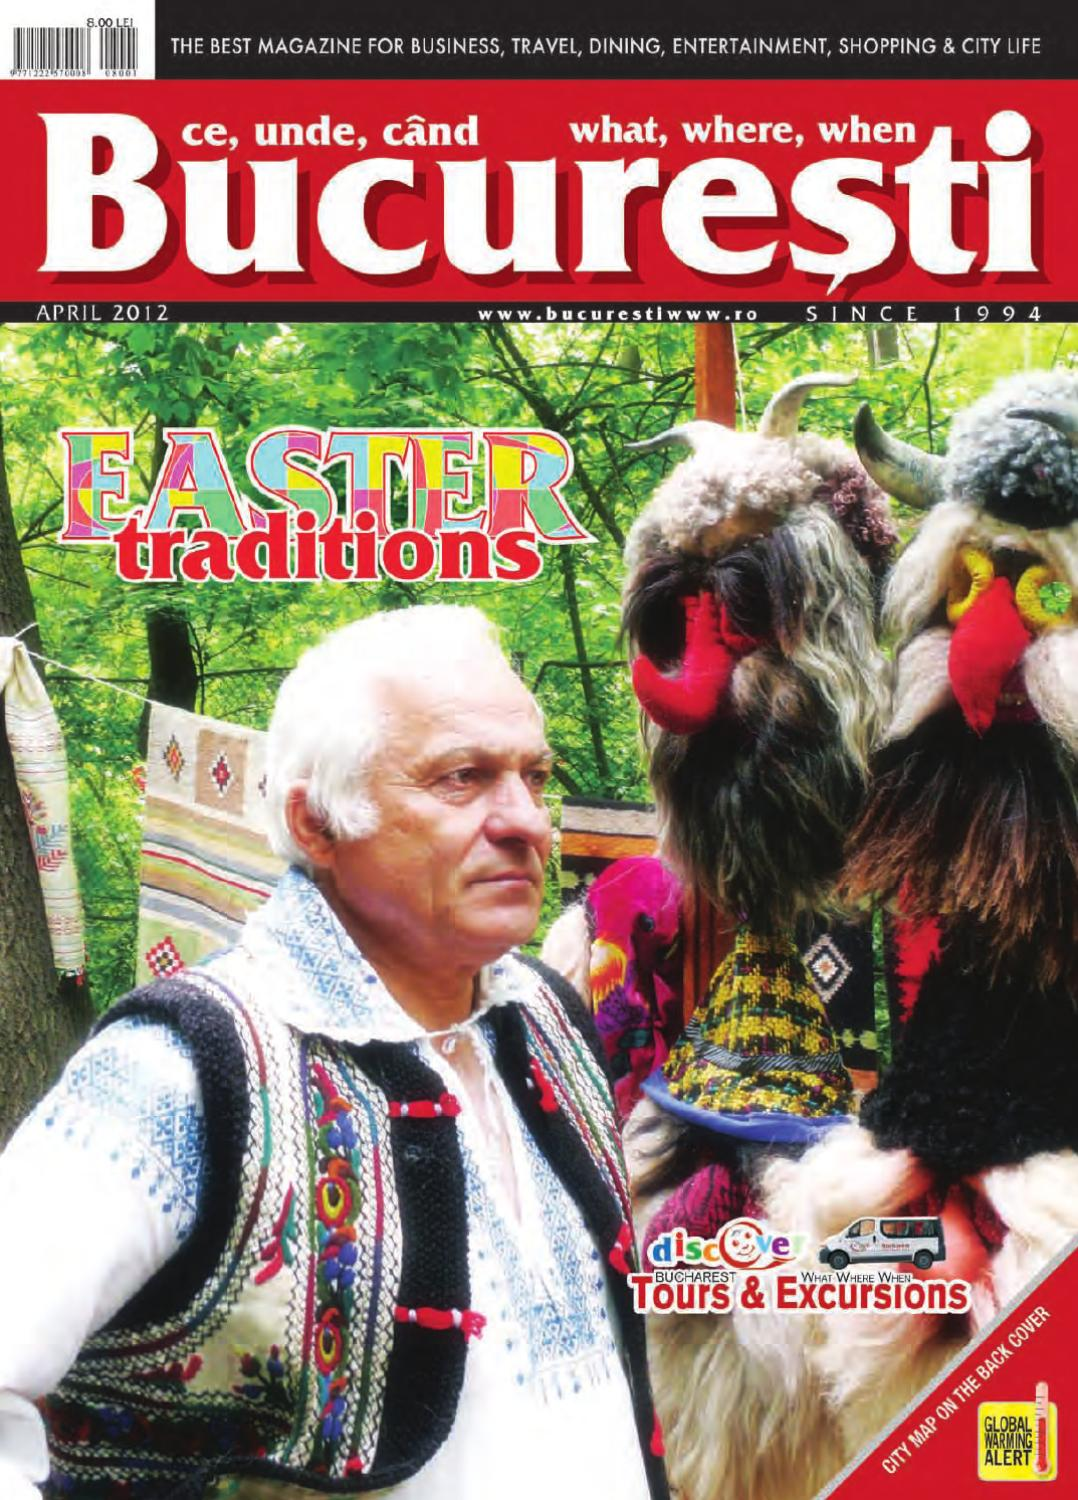 April 2012 bucuresti what where when by crystal publishing group ...